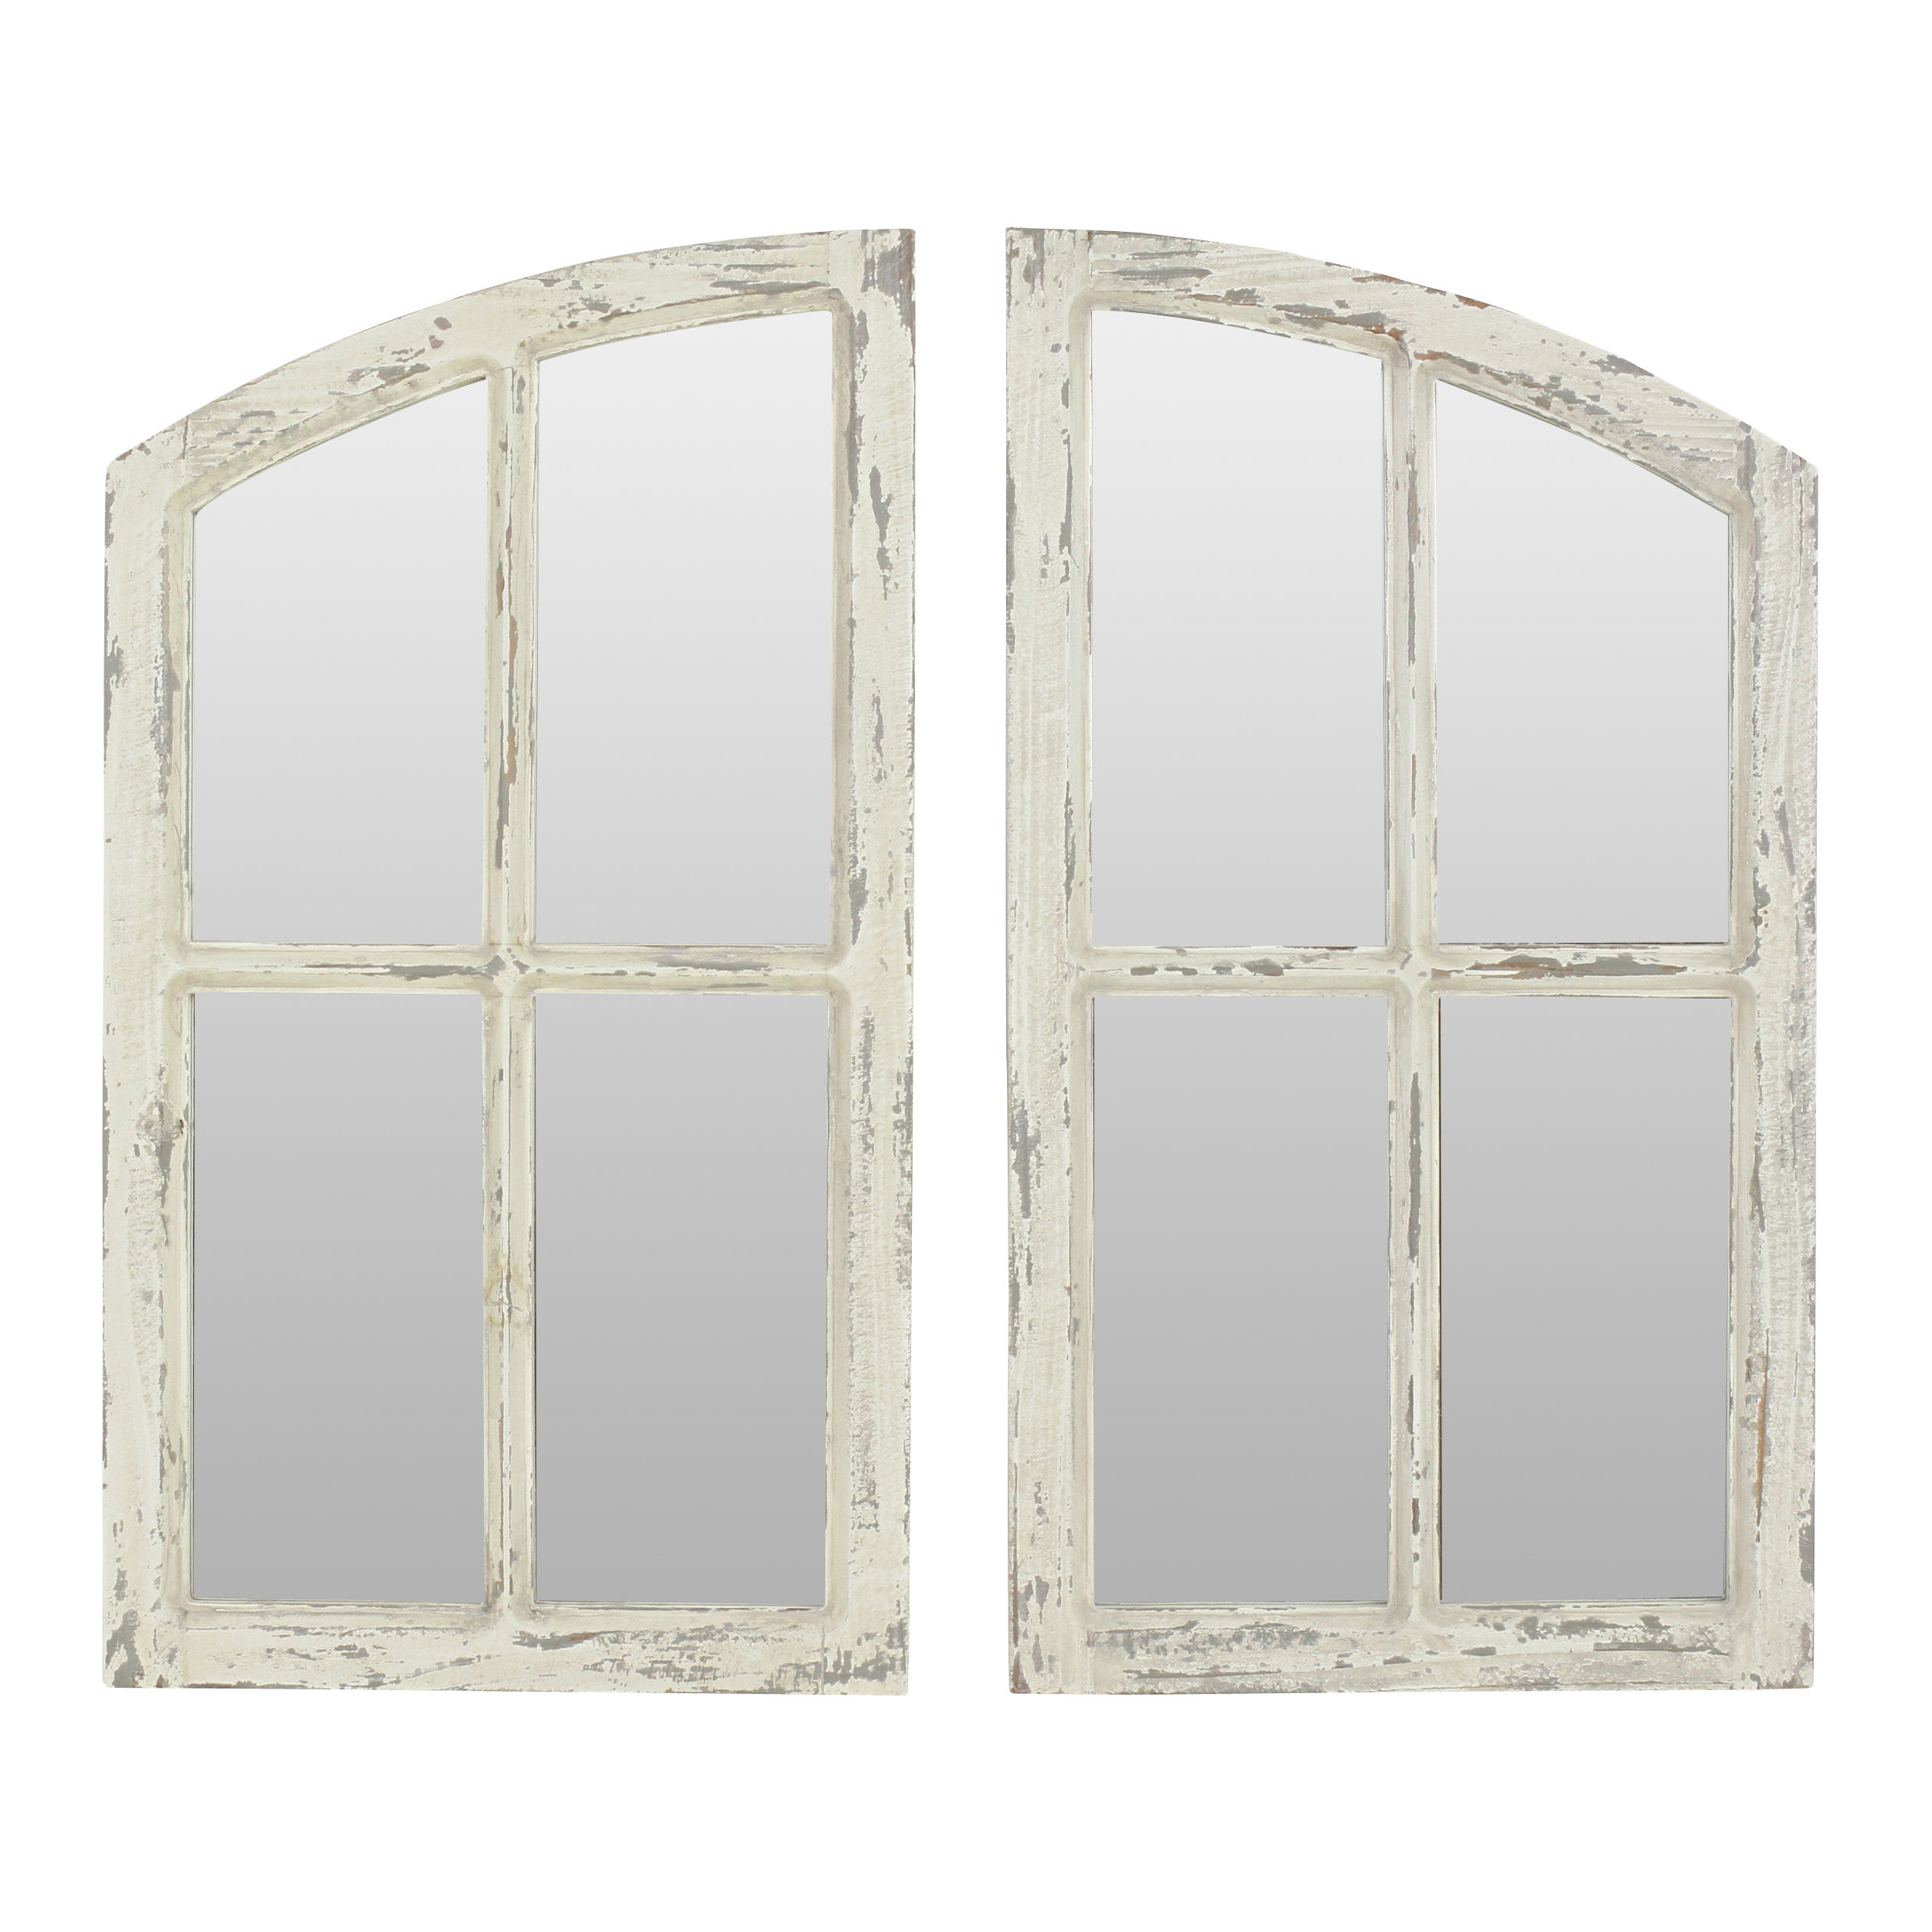 2 Piece Kissena Window Pane Accent Mirror Sets Throughout Famous 2 Piece Kissena Window Pane Accent Mirror Set (View 7 of 20)